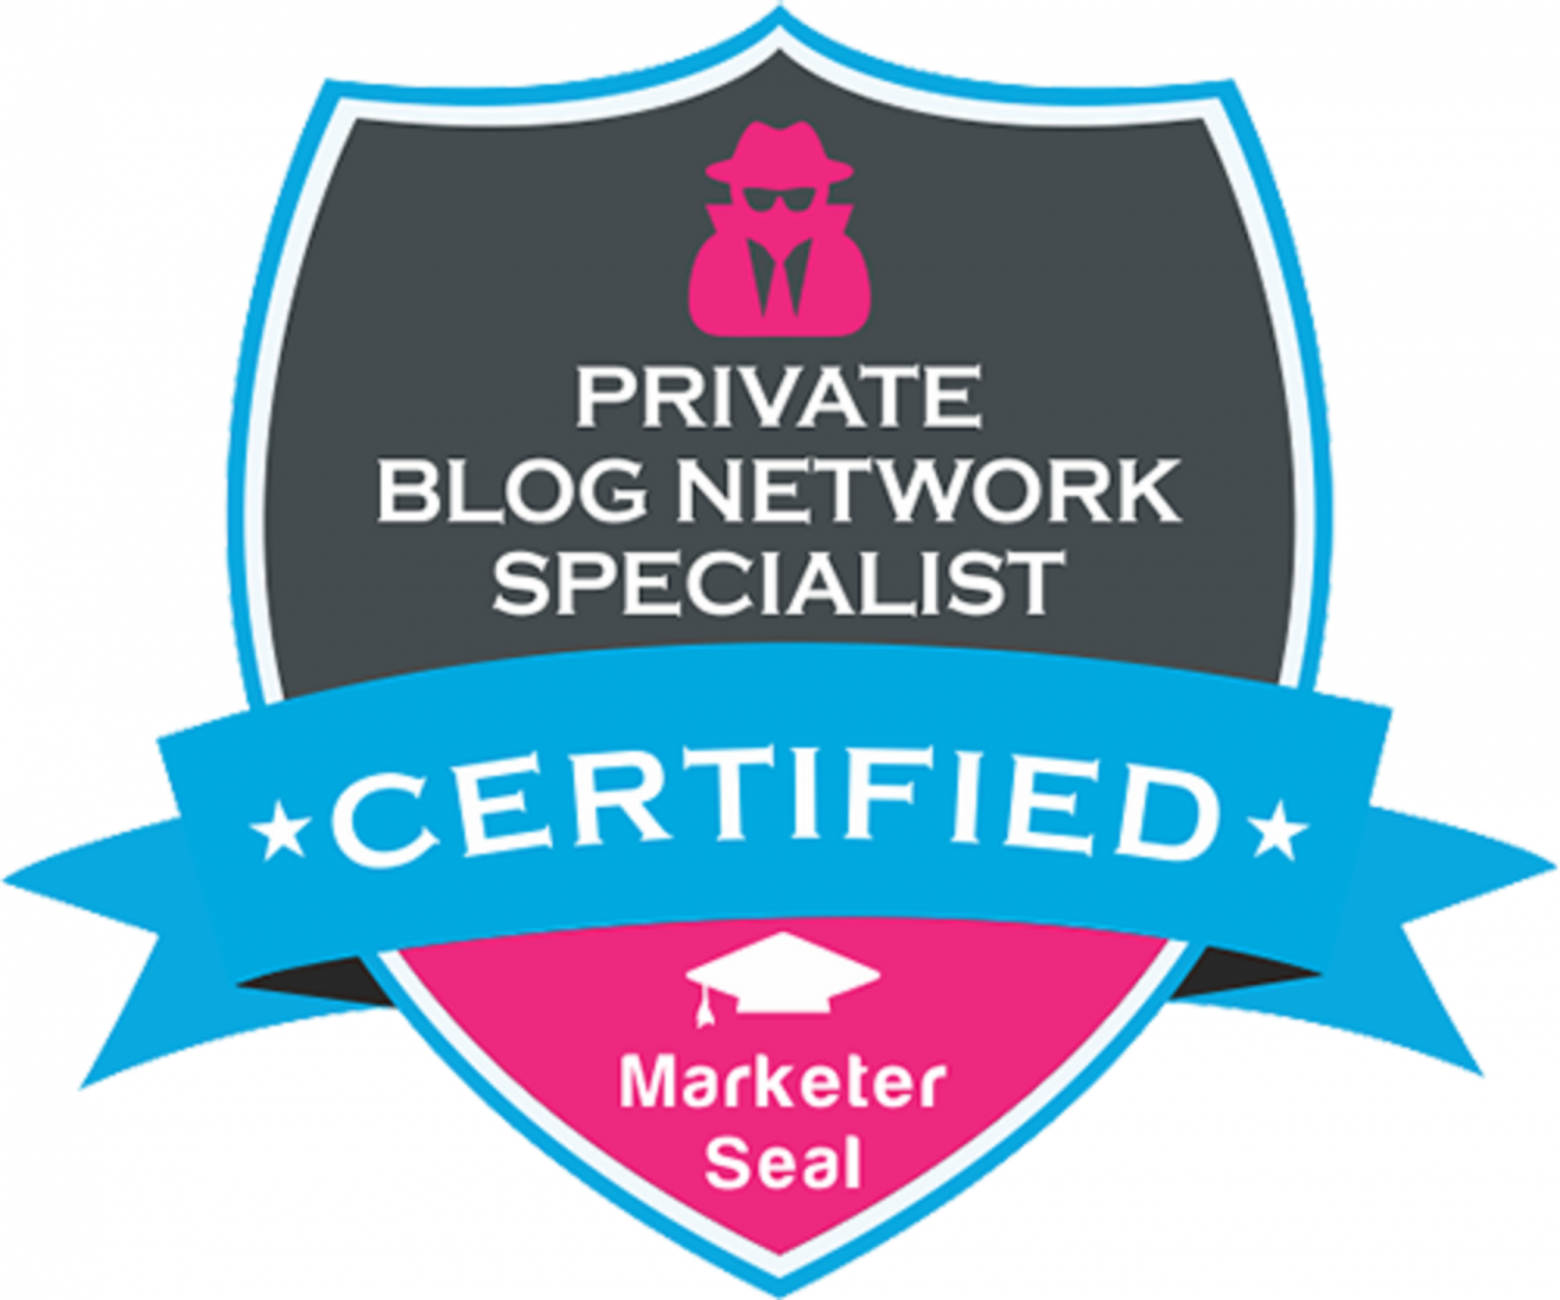 How to Become a Certified BLOG SPECIALIST – Work from Home and MAKE MONEY Online